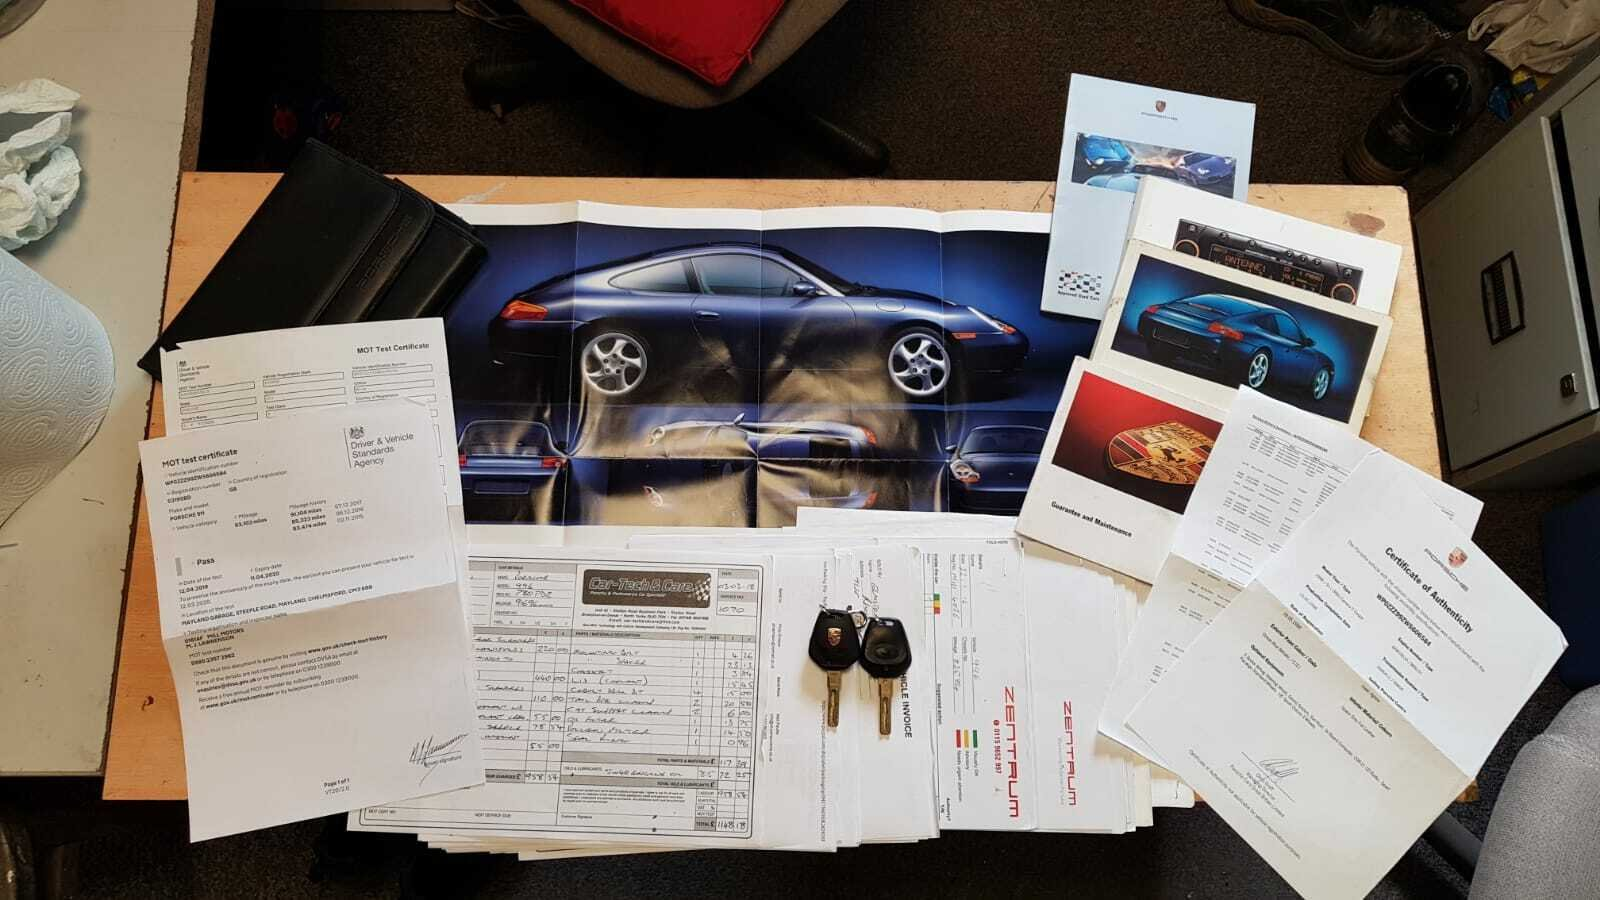 1998 911 Porsche Carrera, Full History, Low Miles For Sale (picture 6 of 6)